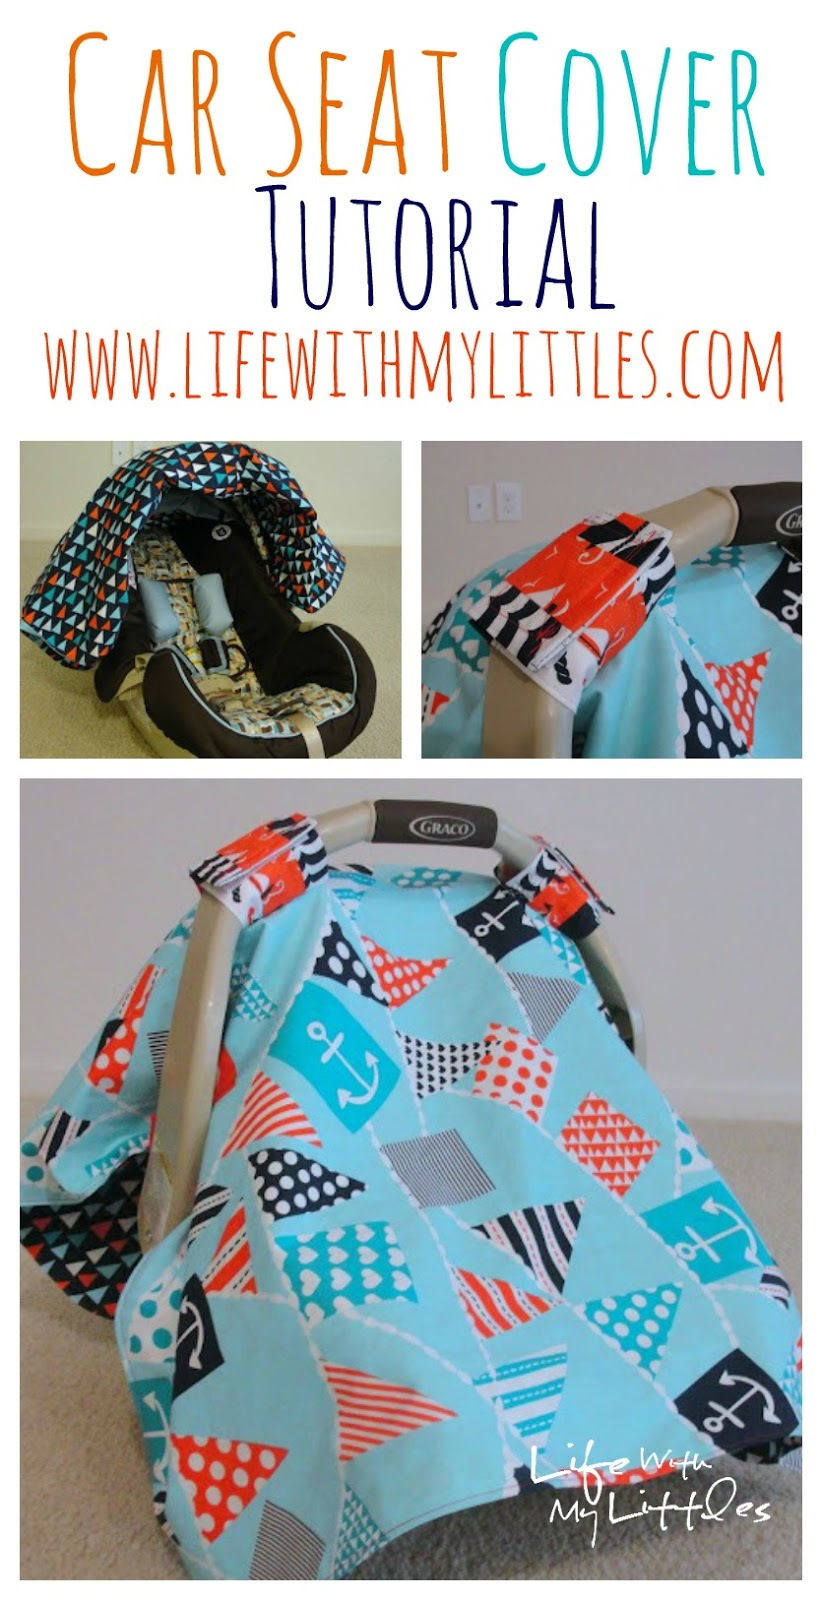 Car Seat Cover Tutorial - Life With My Littles